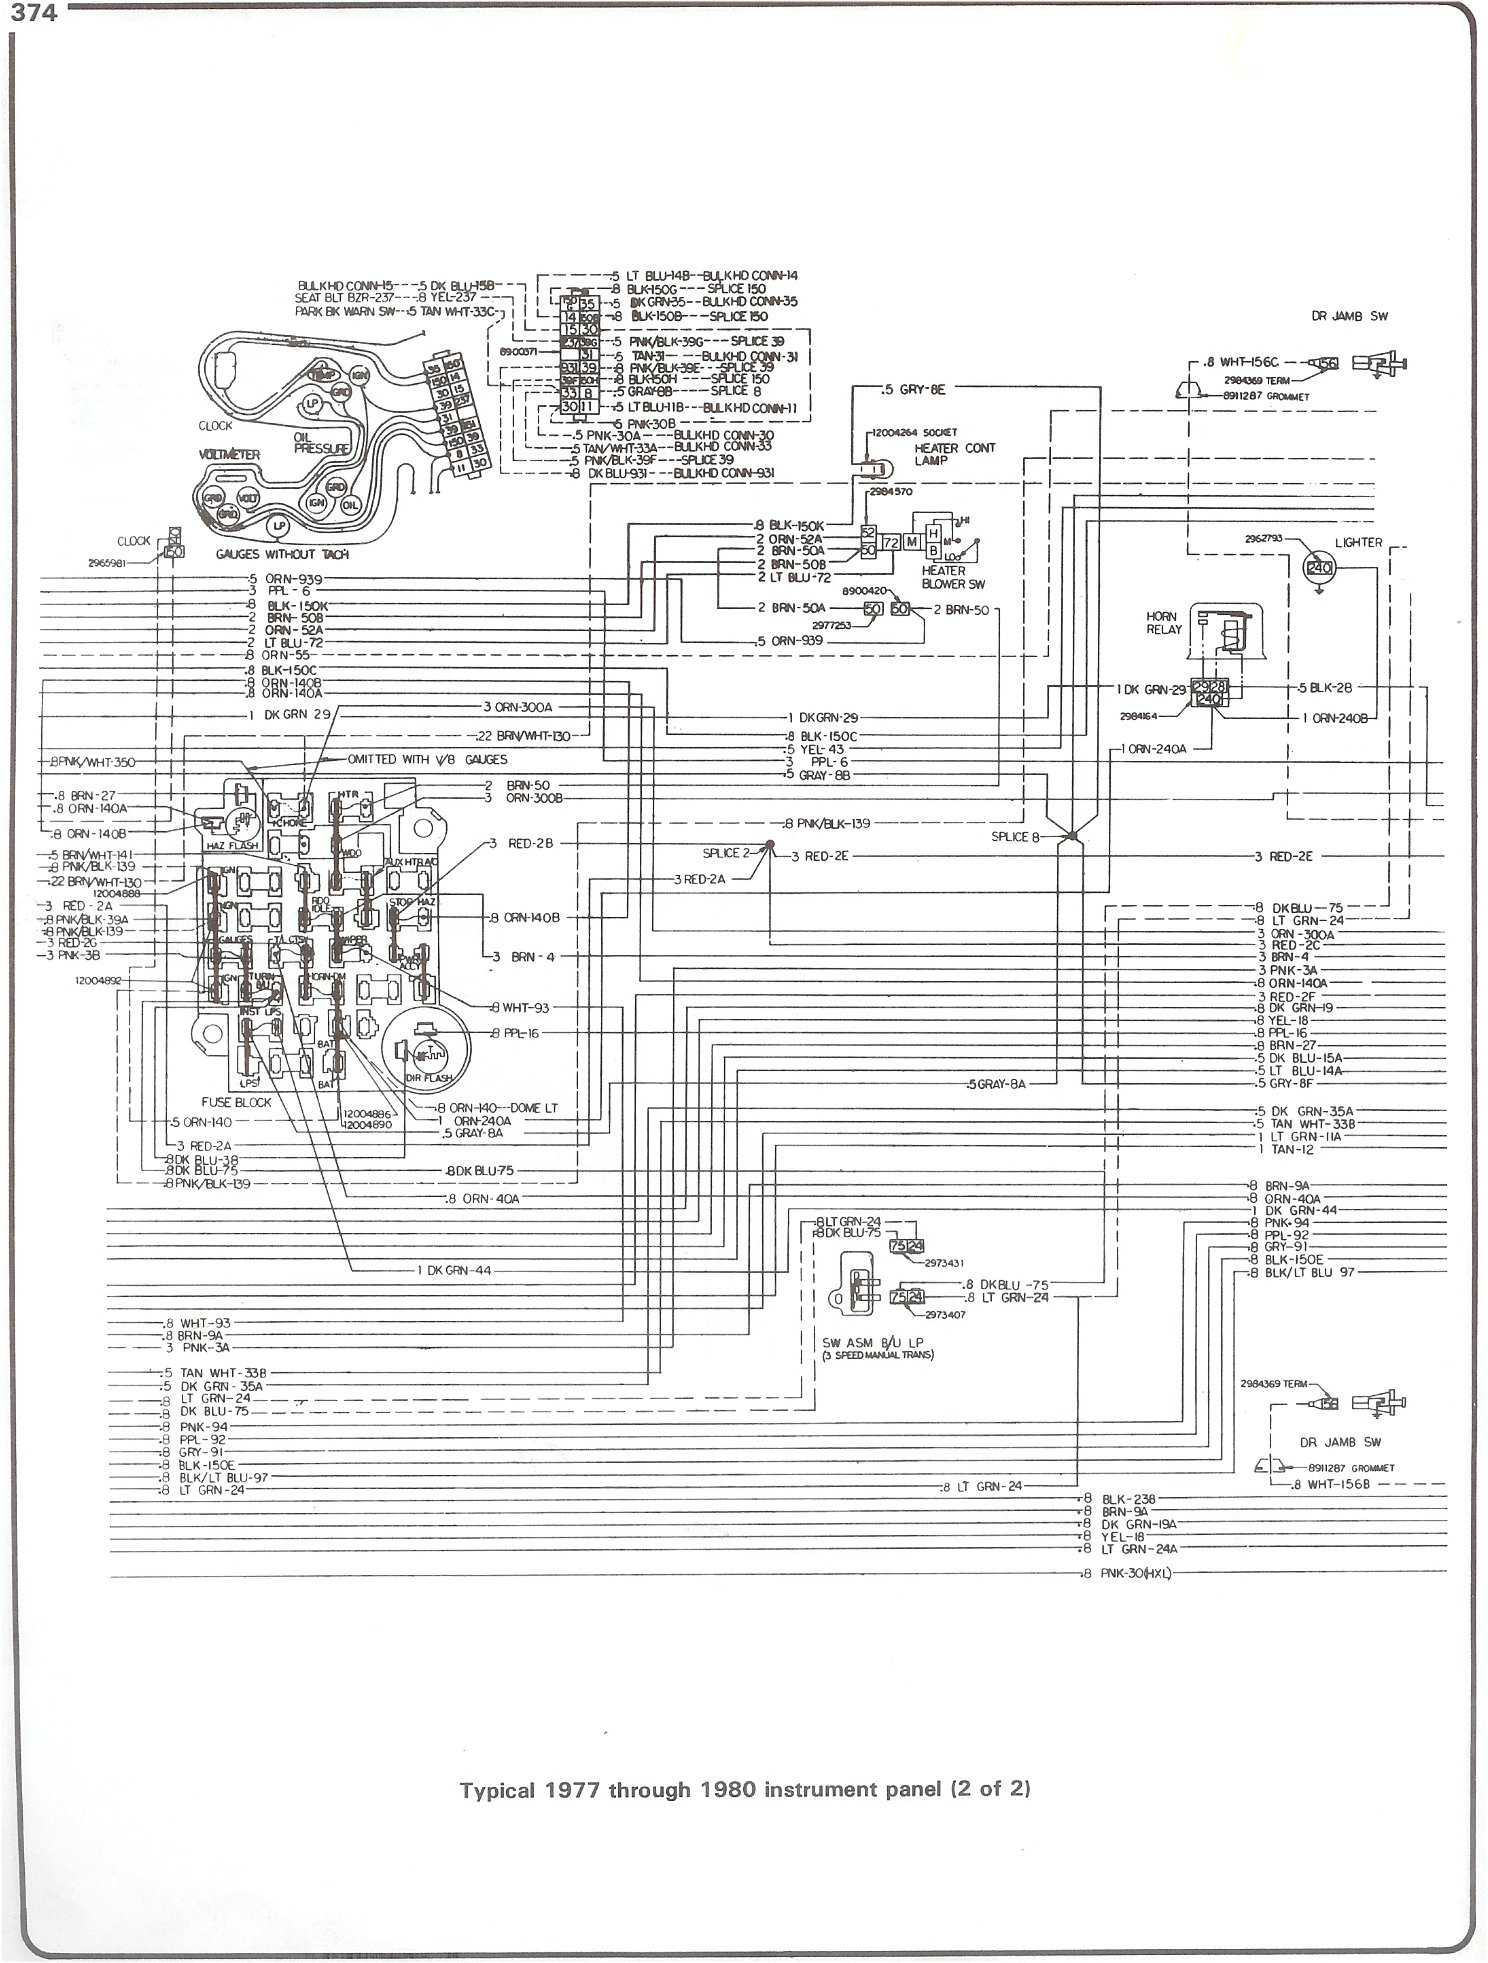 complete 73 87 wiring diagrams chevy p30 wiring diagram pdf chevy p30 wiring  diagram pdf